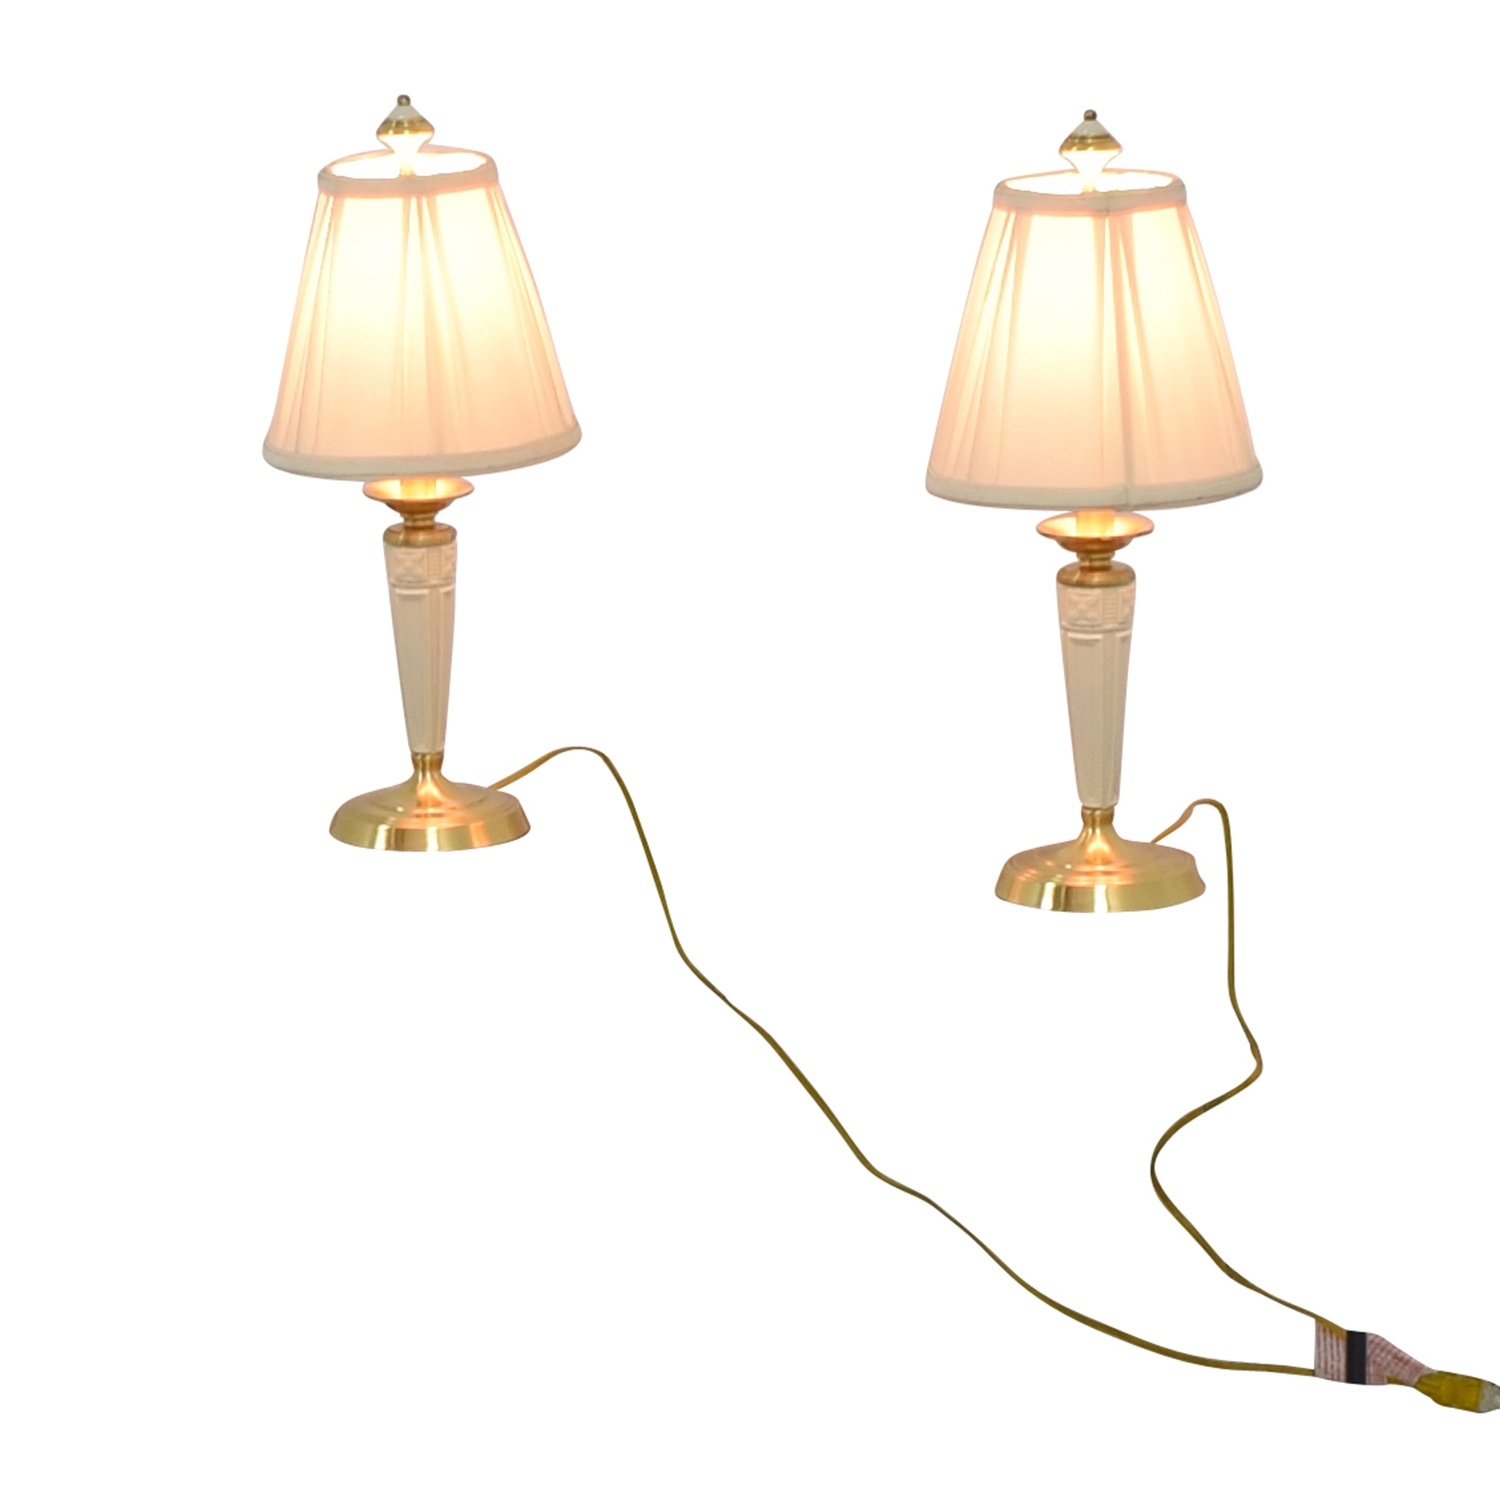 90 off lenox lenox white and gold base table lamps decor lenox lenox white and gold base table lamps nyc mozeypictures Choice Image